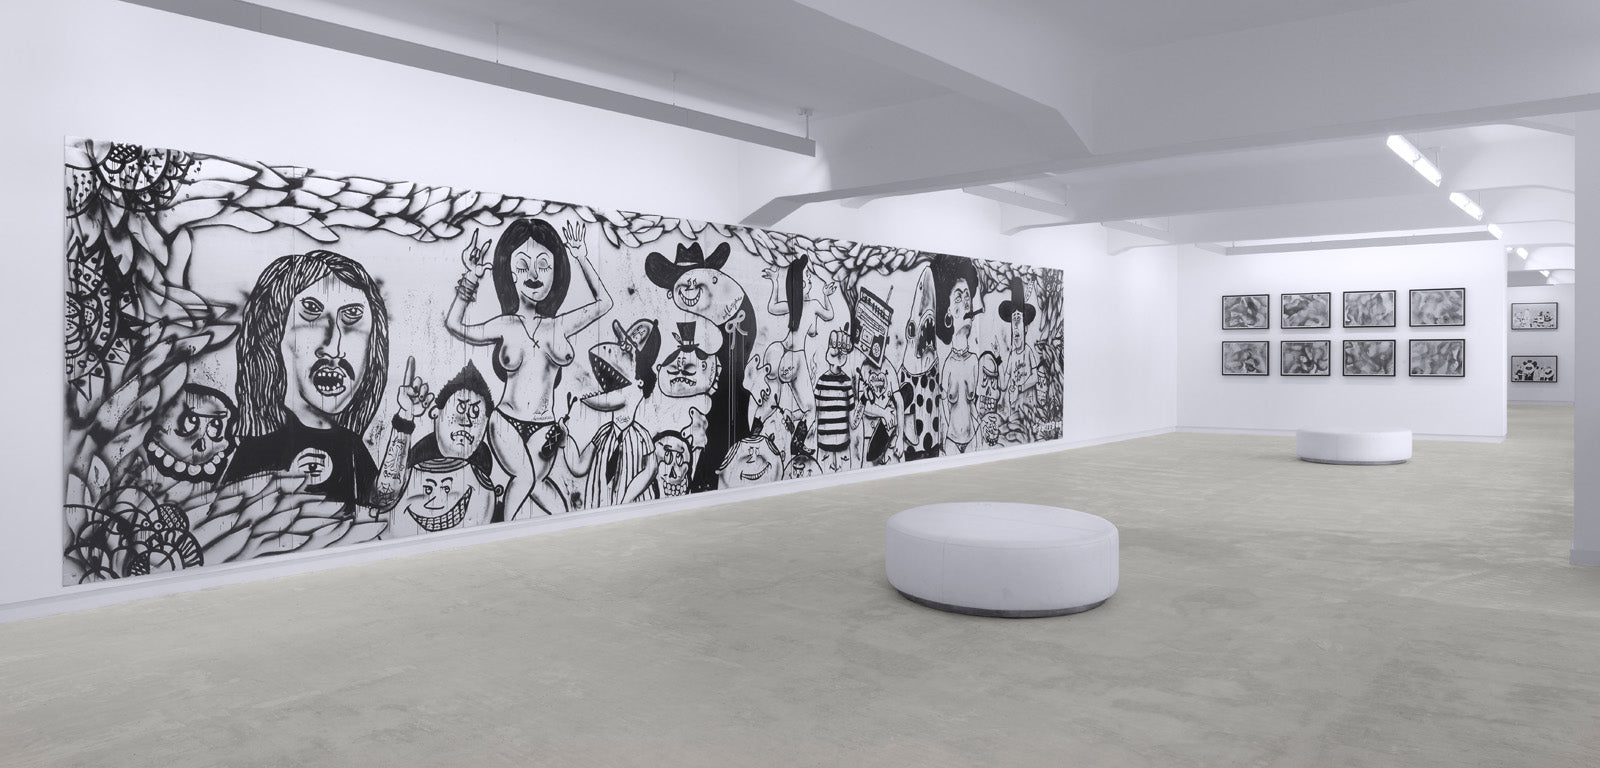 Mario Ybarra Jr., Installation view, 2010, Galerie Michael Janssen Berlin